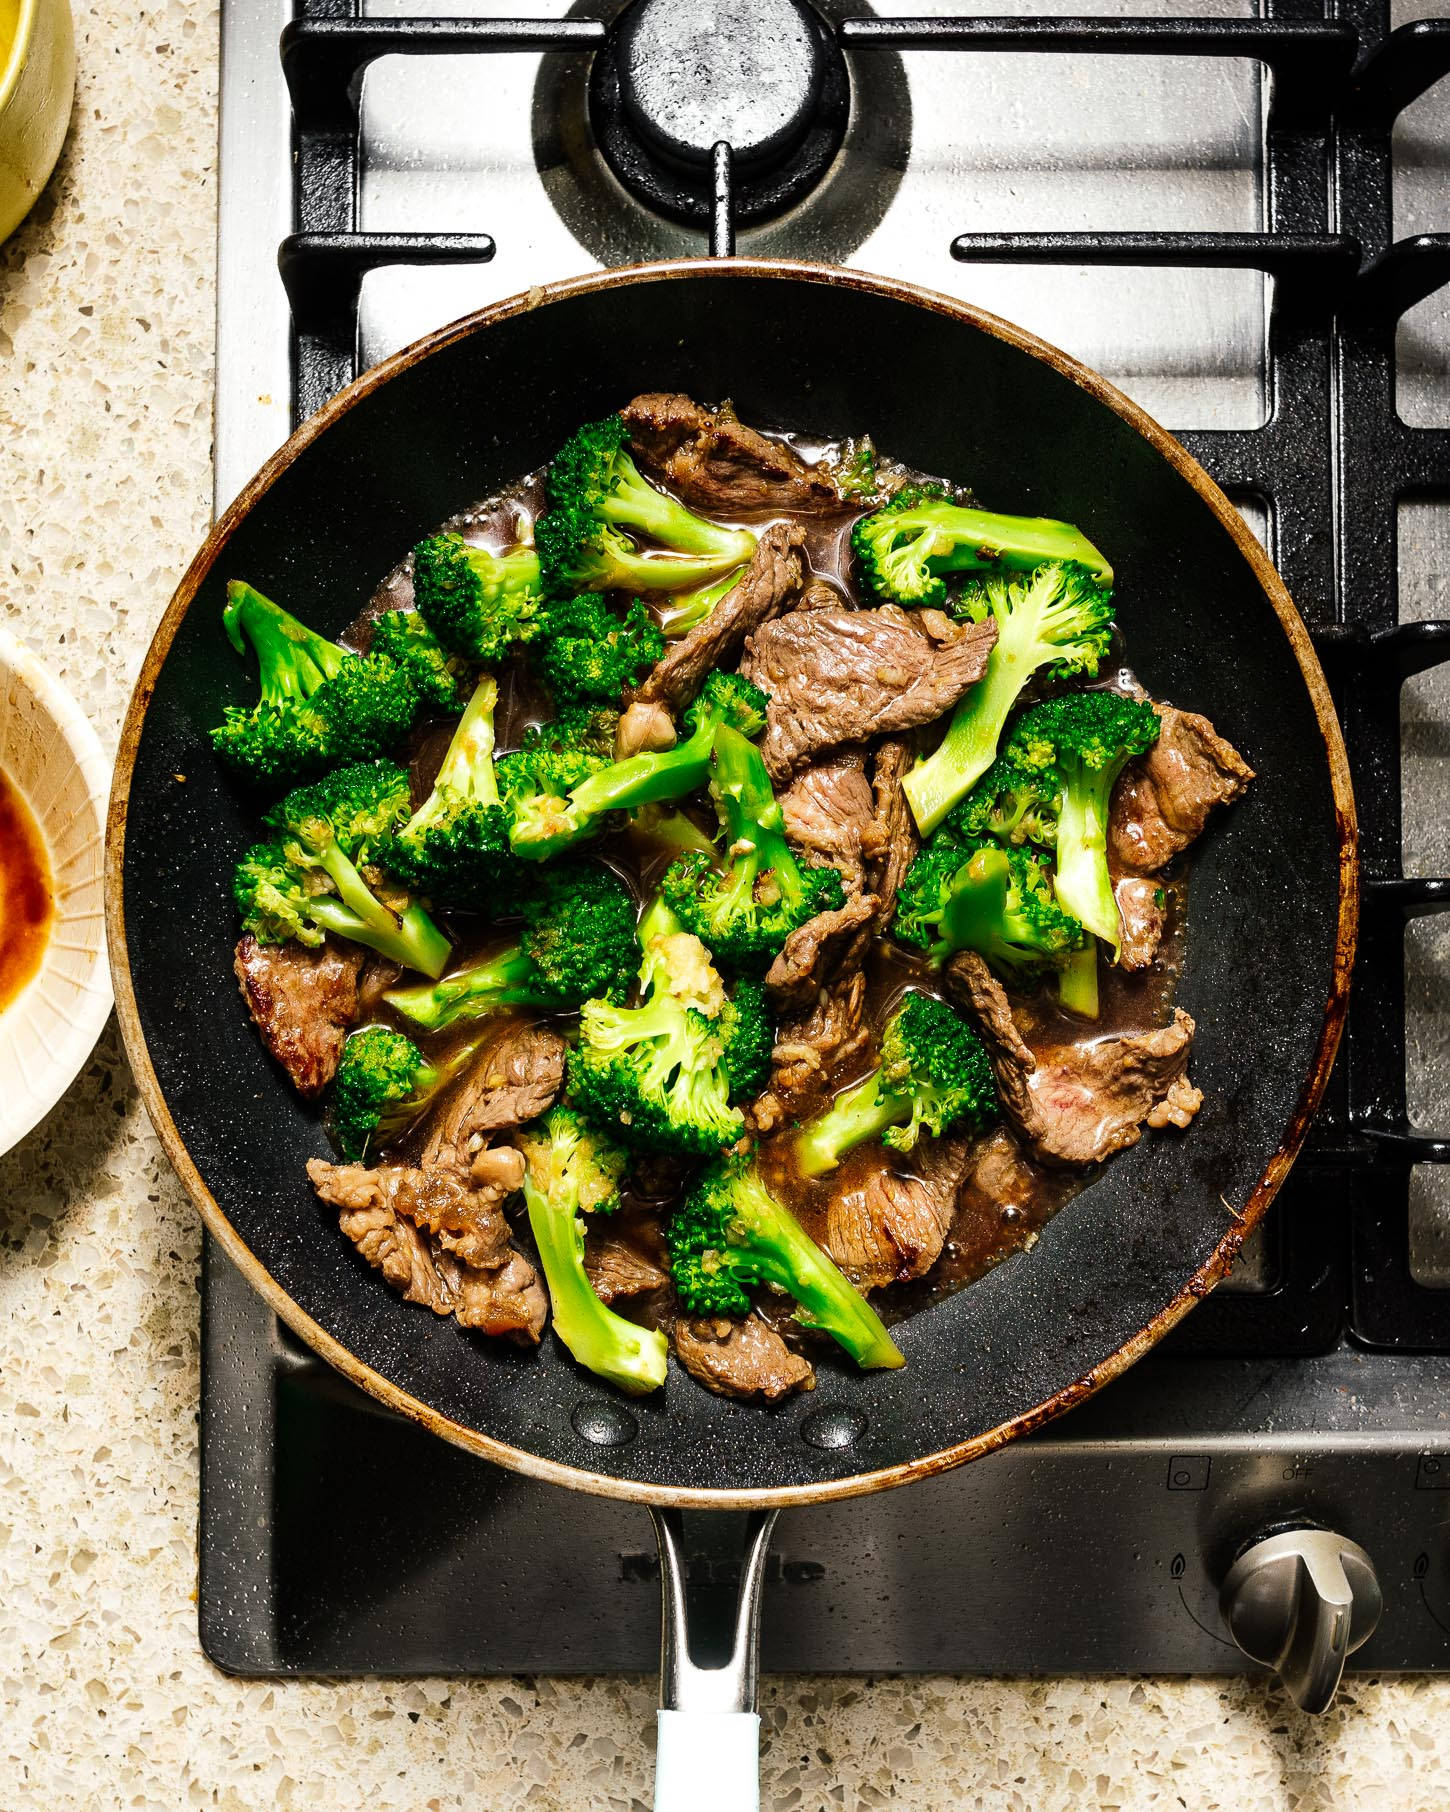 This easy keto friendly low-carb beef and broccoli stir fry is for all my peeps who are trying to enjoy life while still cutting down on carbs. Savory juicy beef and tender green broccoli in an addictive sauce. Super tasty and quick. Meal prep it for the week (double the batch) and you're golden! #keto #ketofriendly #protein #macros #stirfry #cauliflowerrice #beefandbroccoli